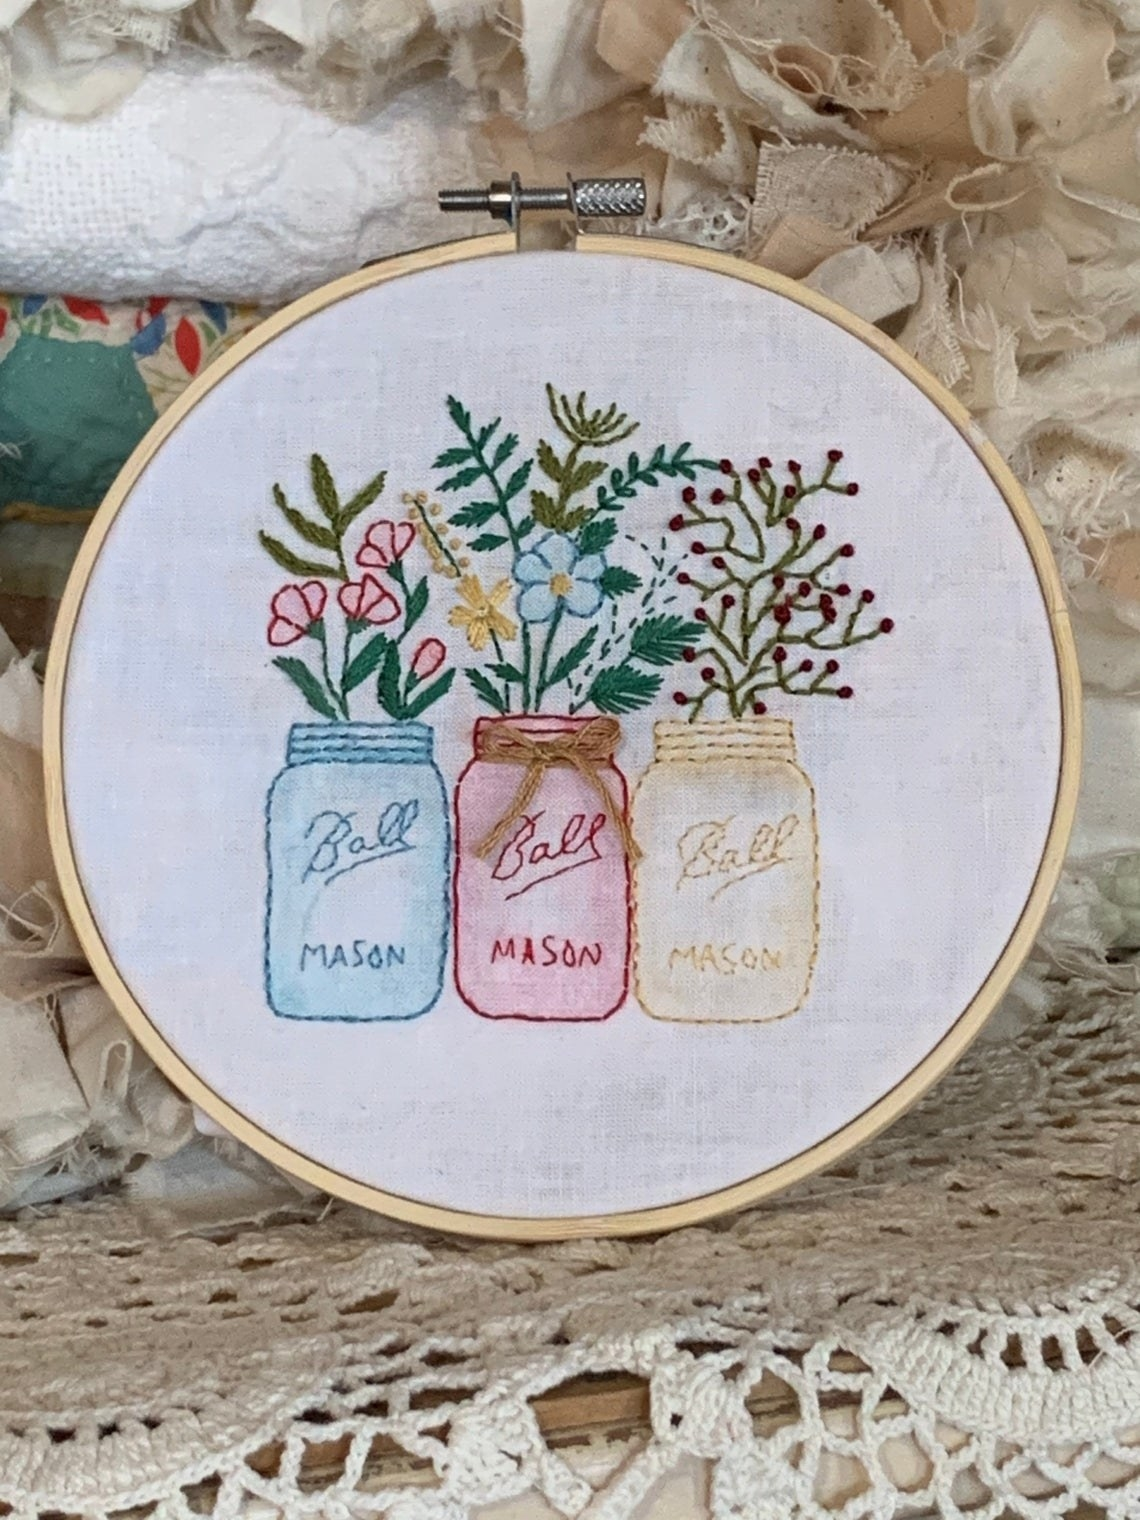 Three mason jars with bundles of flowers in each one